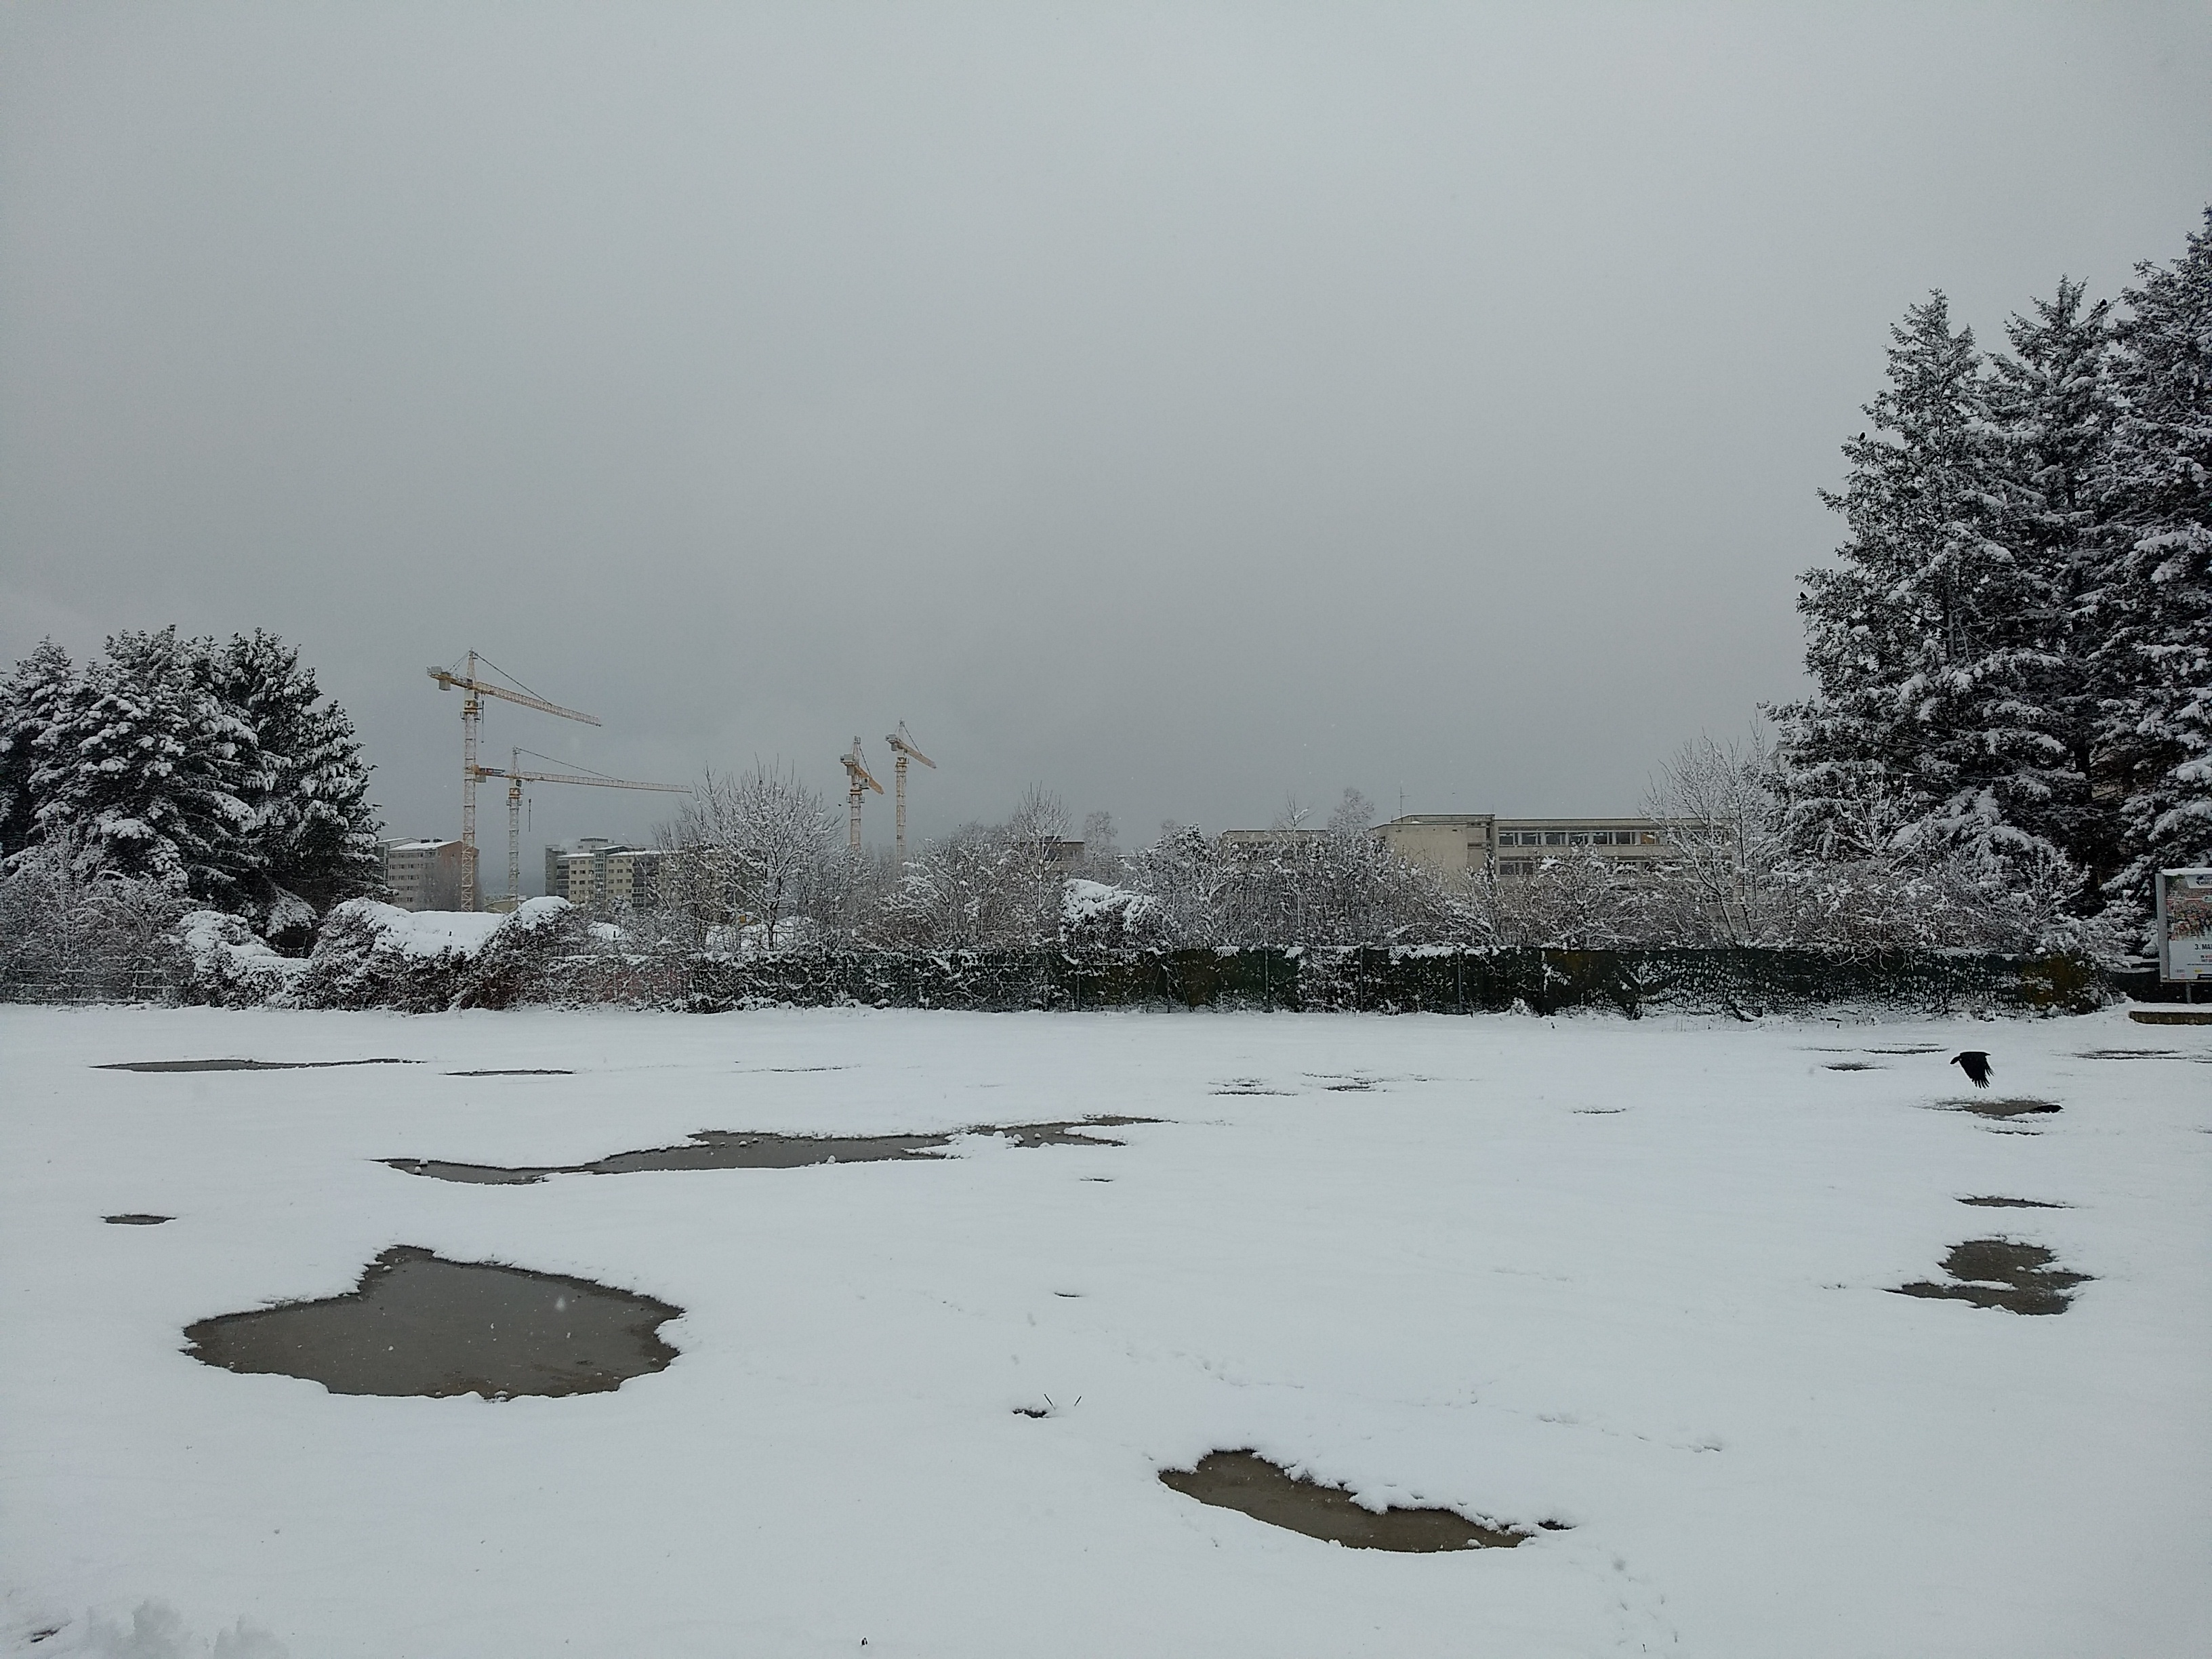 A snowy field with construction cranes in the distant background beyond a fence